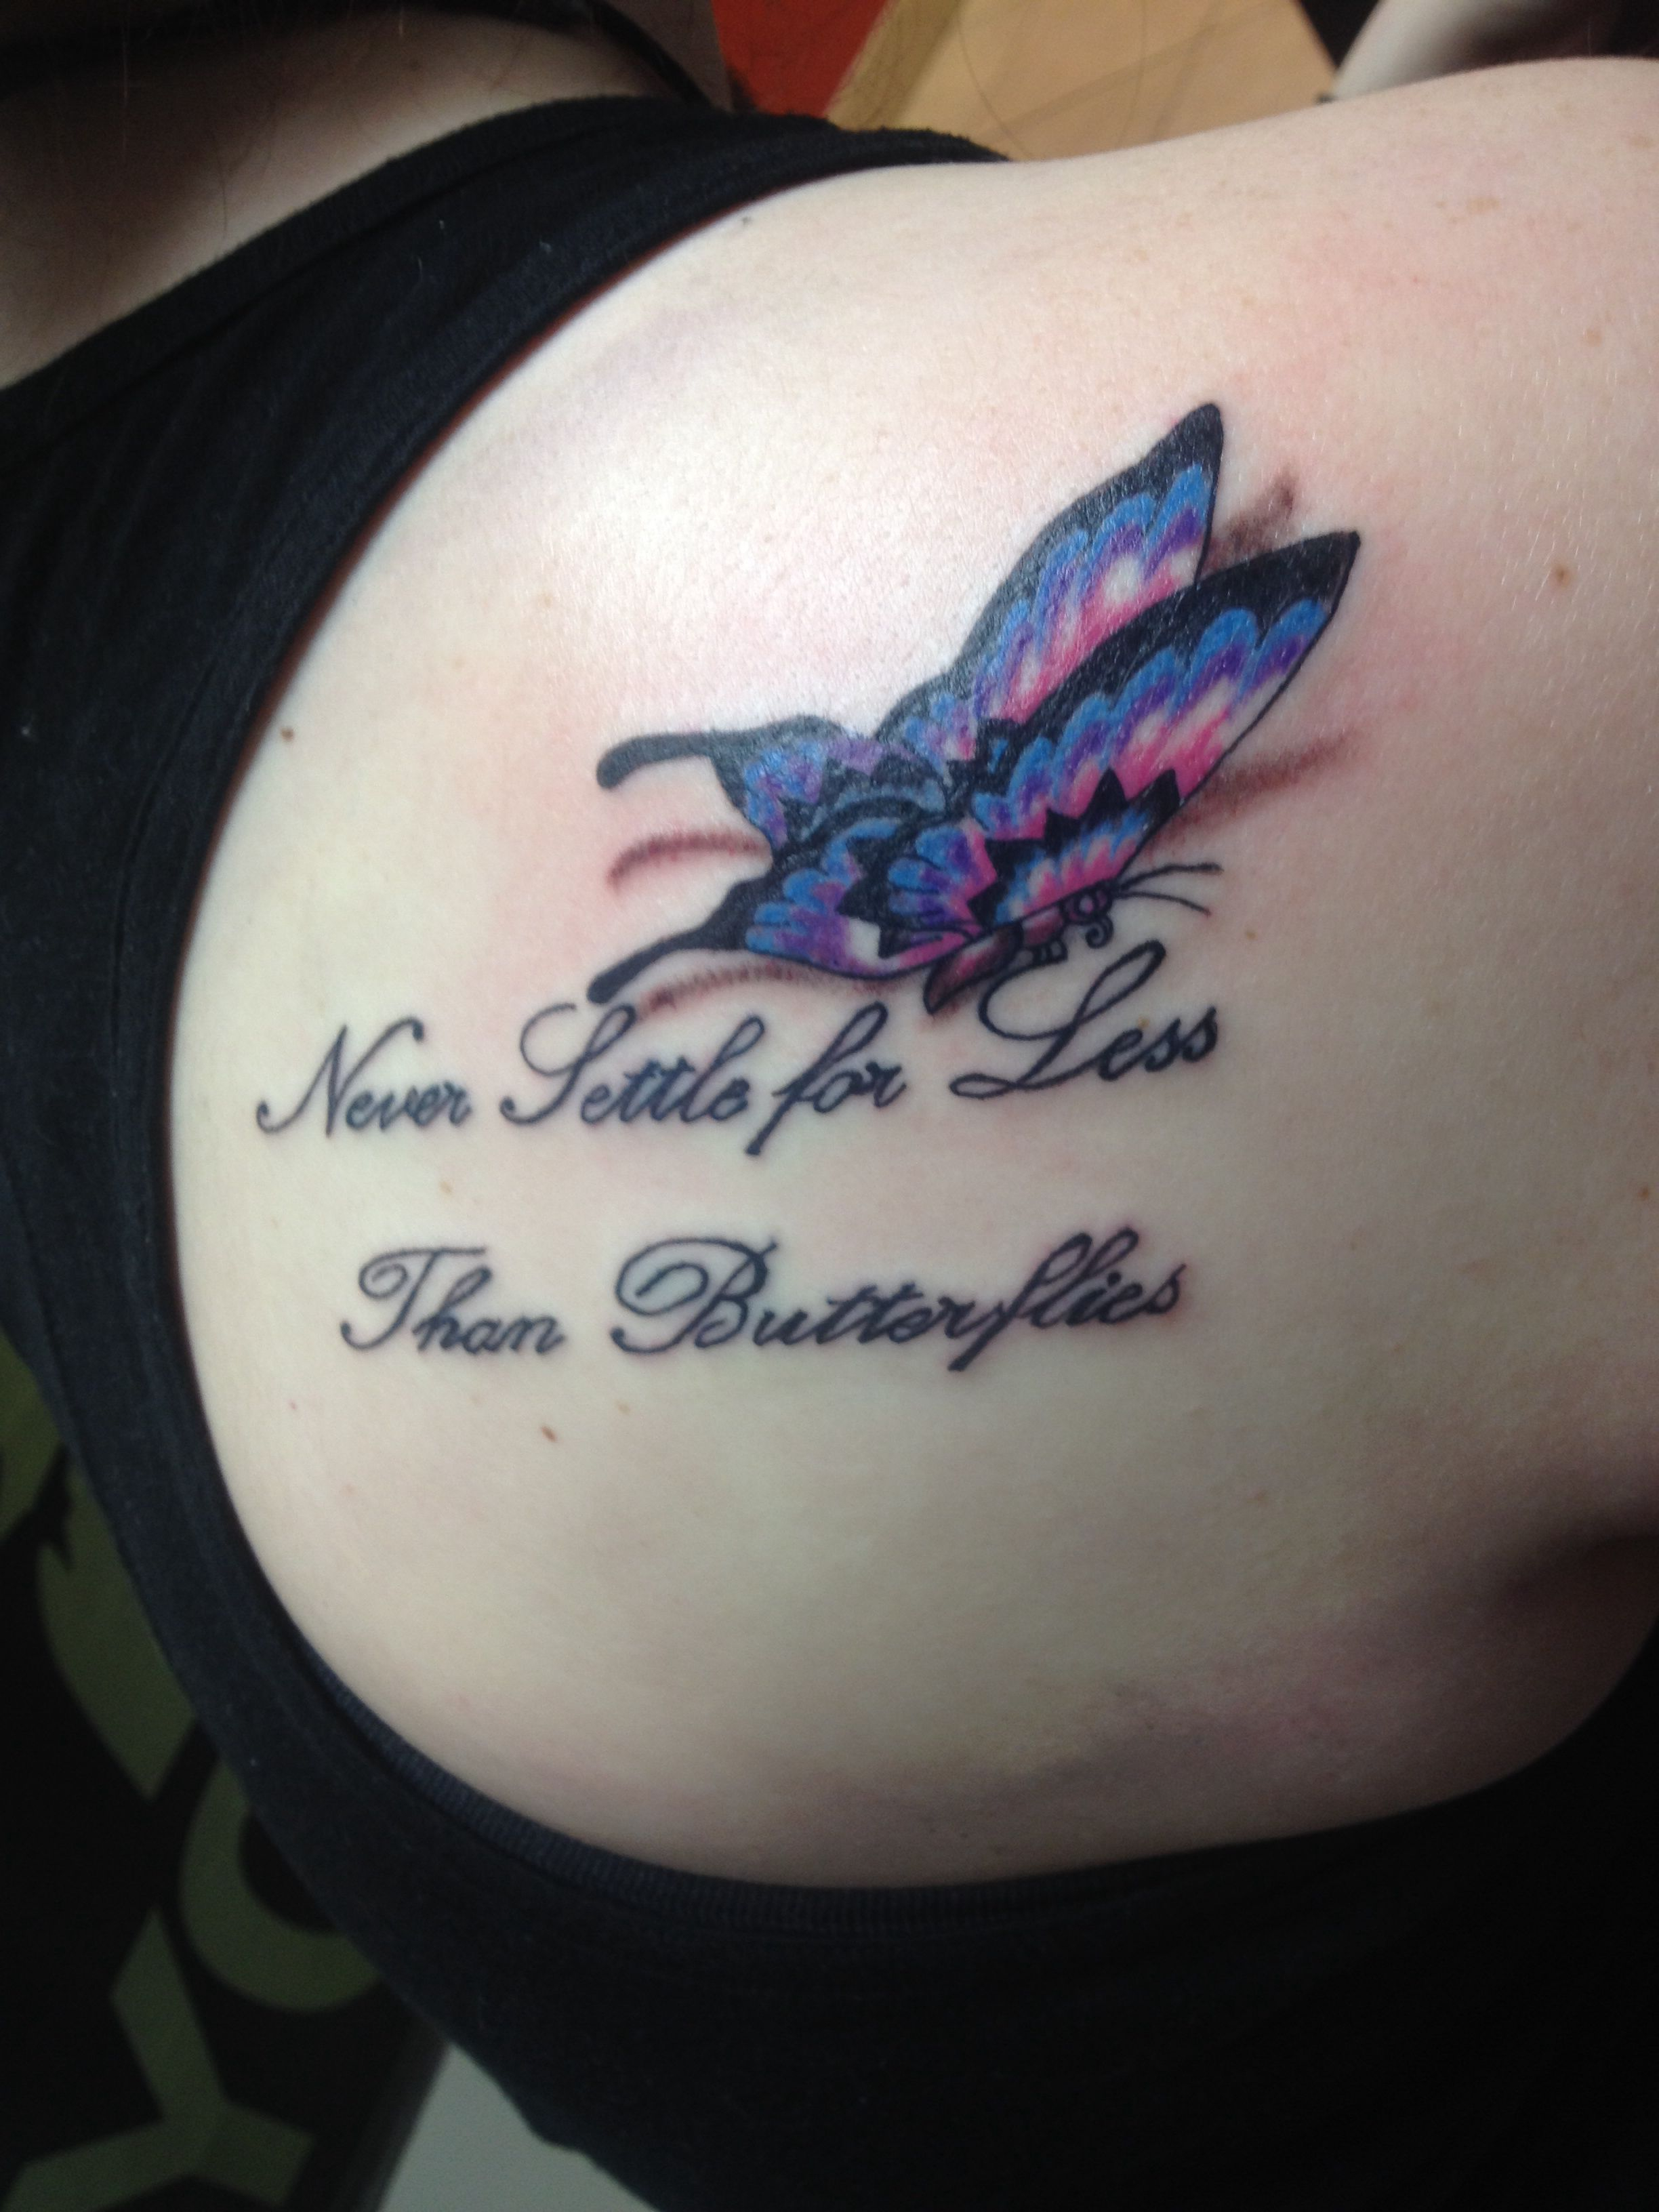 Never Settle For Less Than Butterflies Tattoo Likes Tattoos regarding dimensions 2448 X 3264